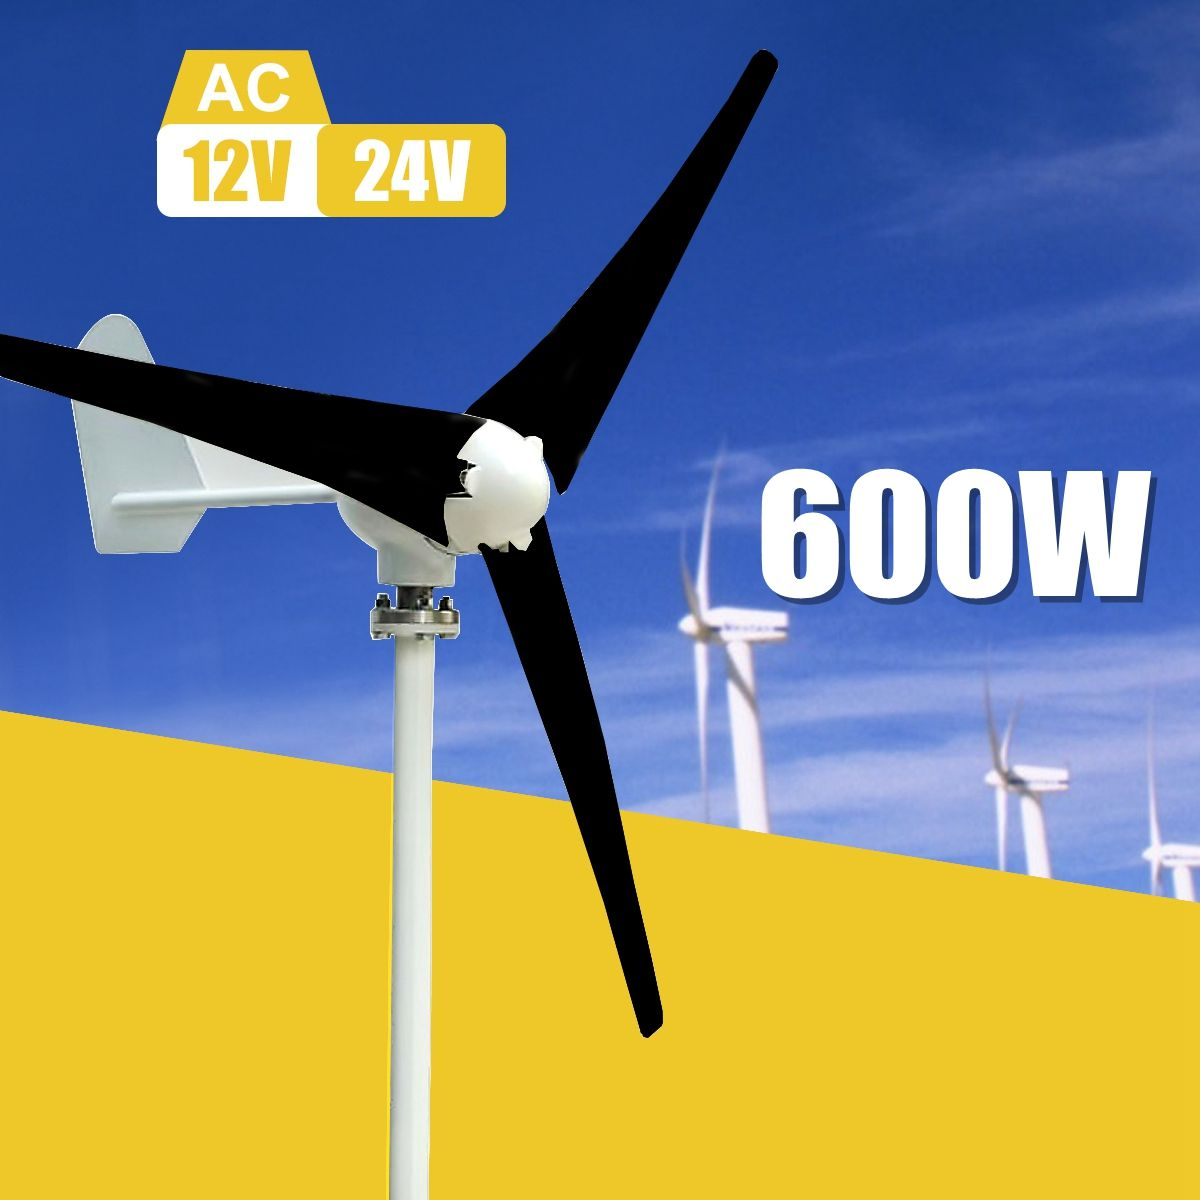 Max 600W Wind Turbine Generator Kit Max AC 12V 24V 3 Blade Option Aerogenerator